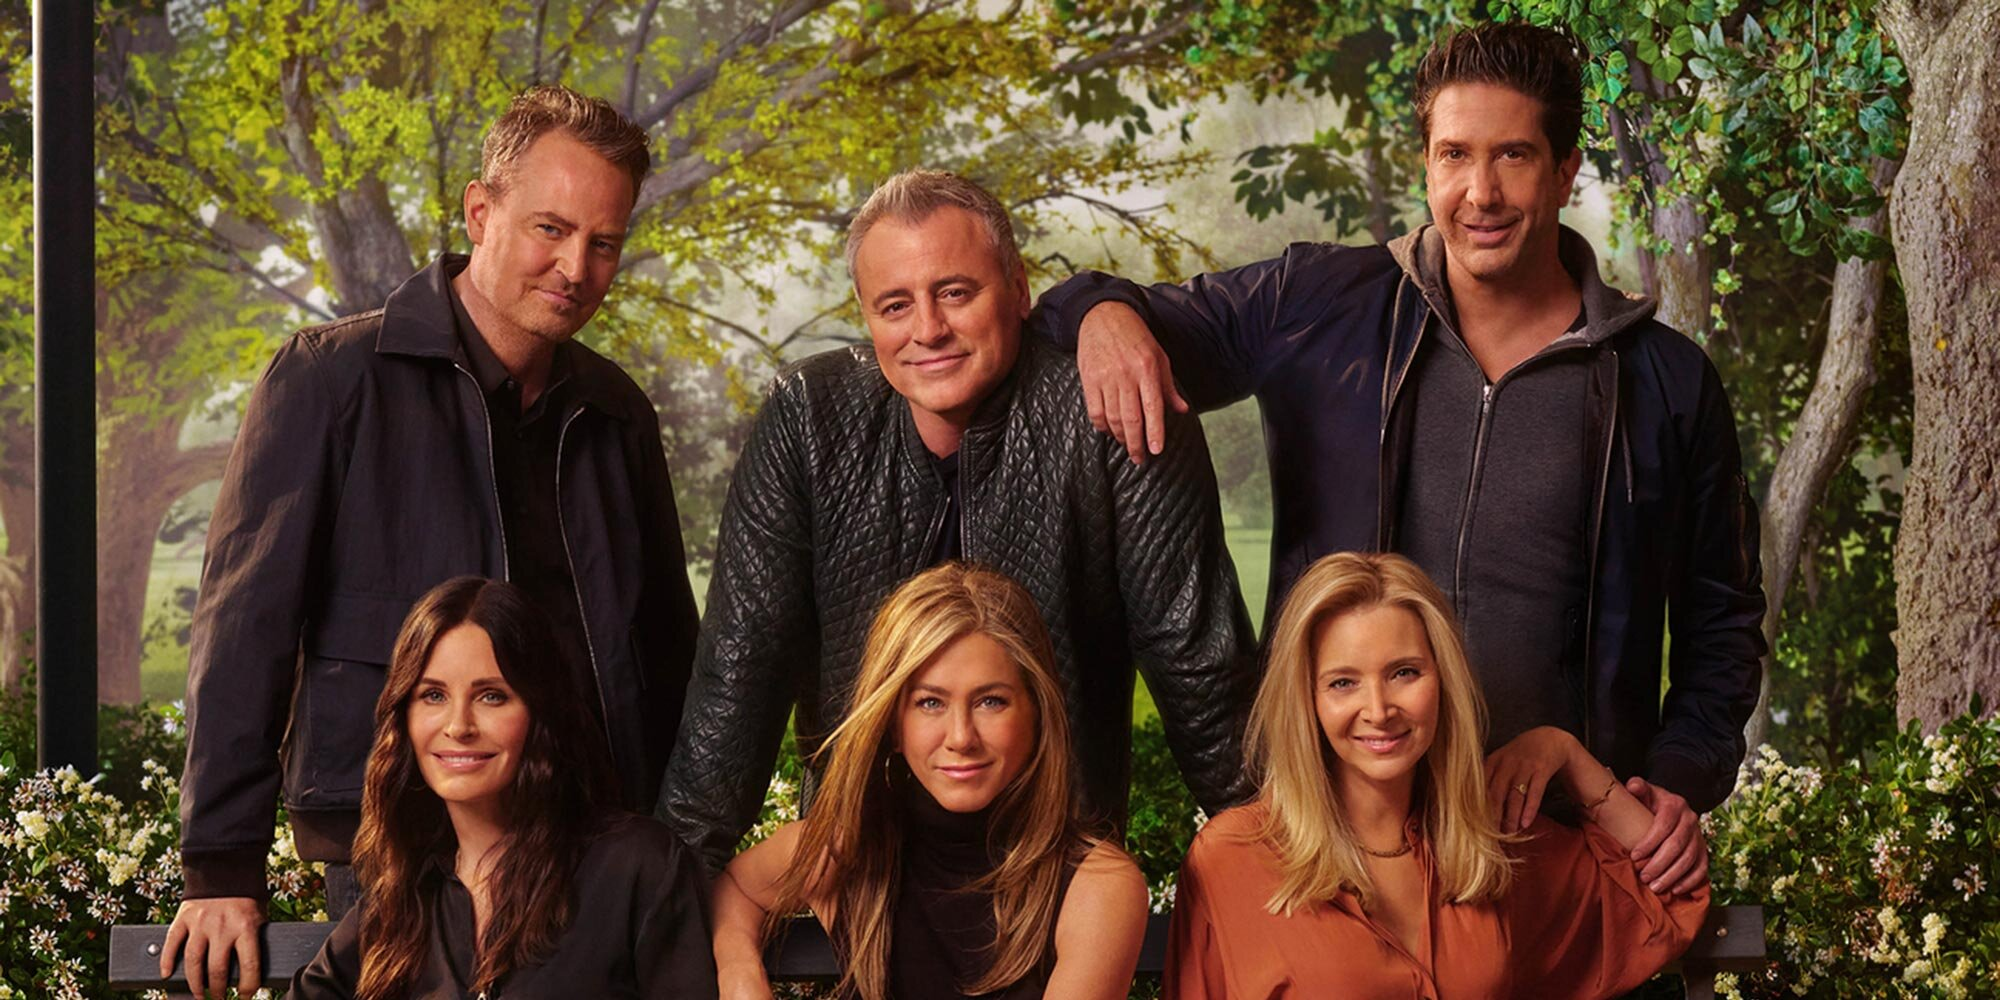 Here's how the 'Friends' reunion came together